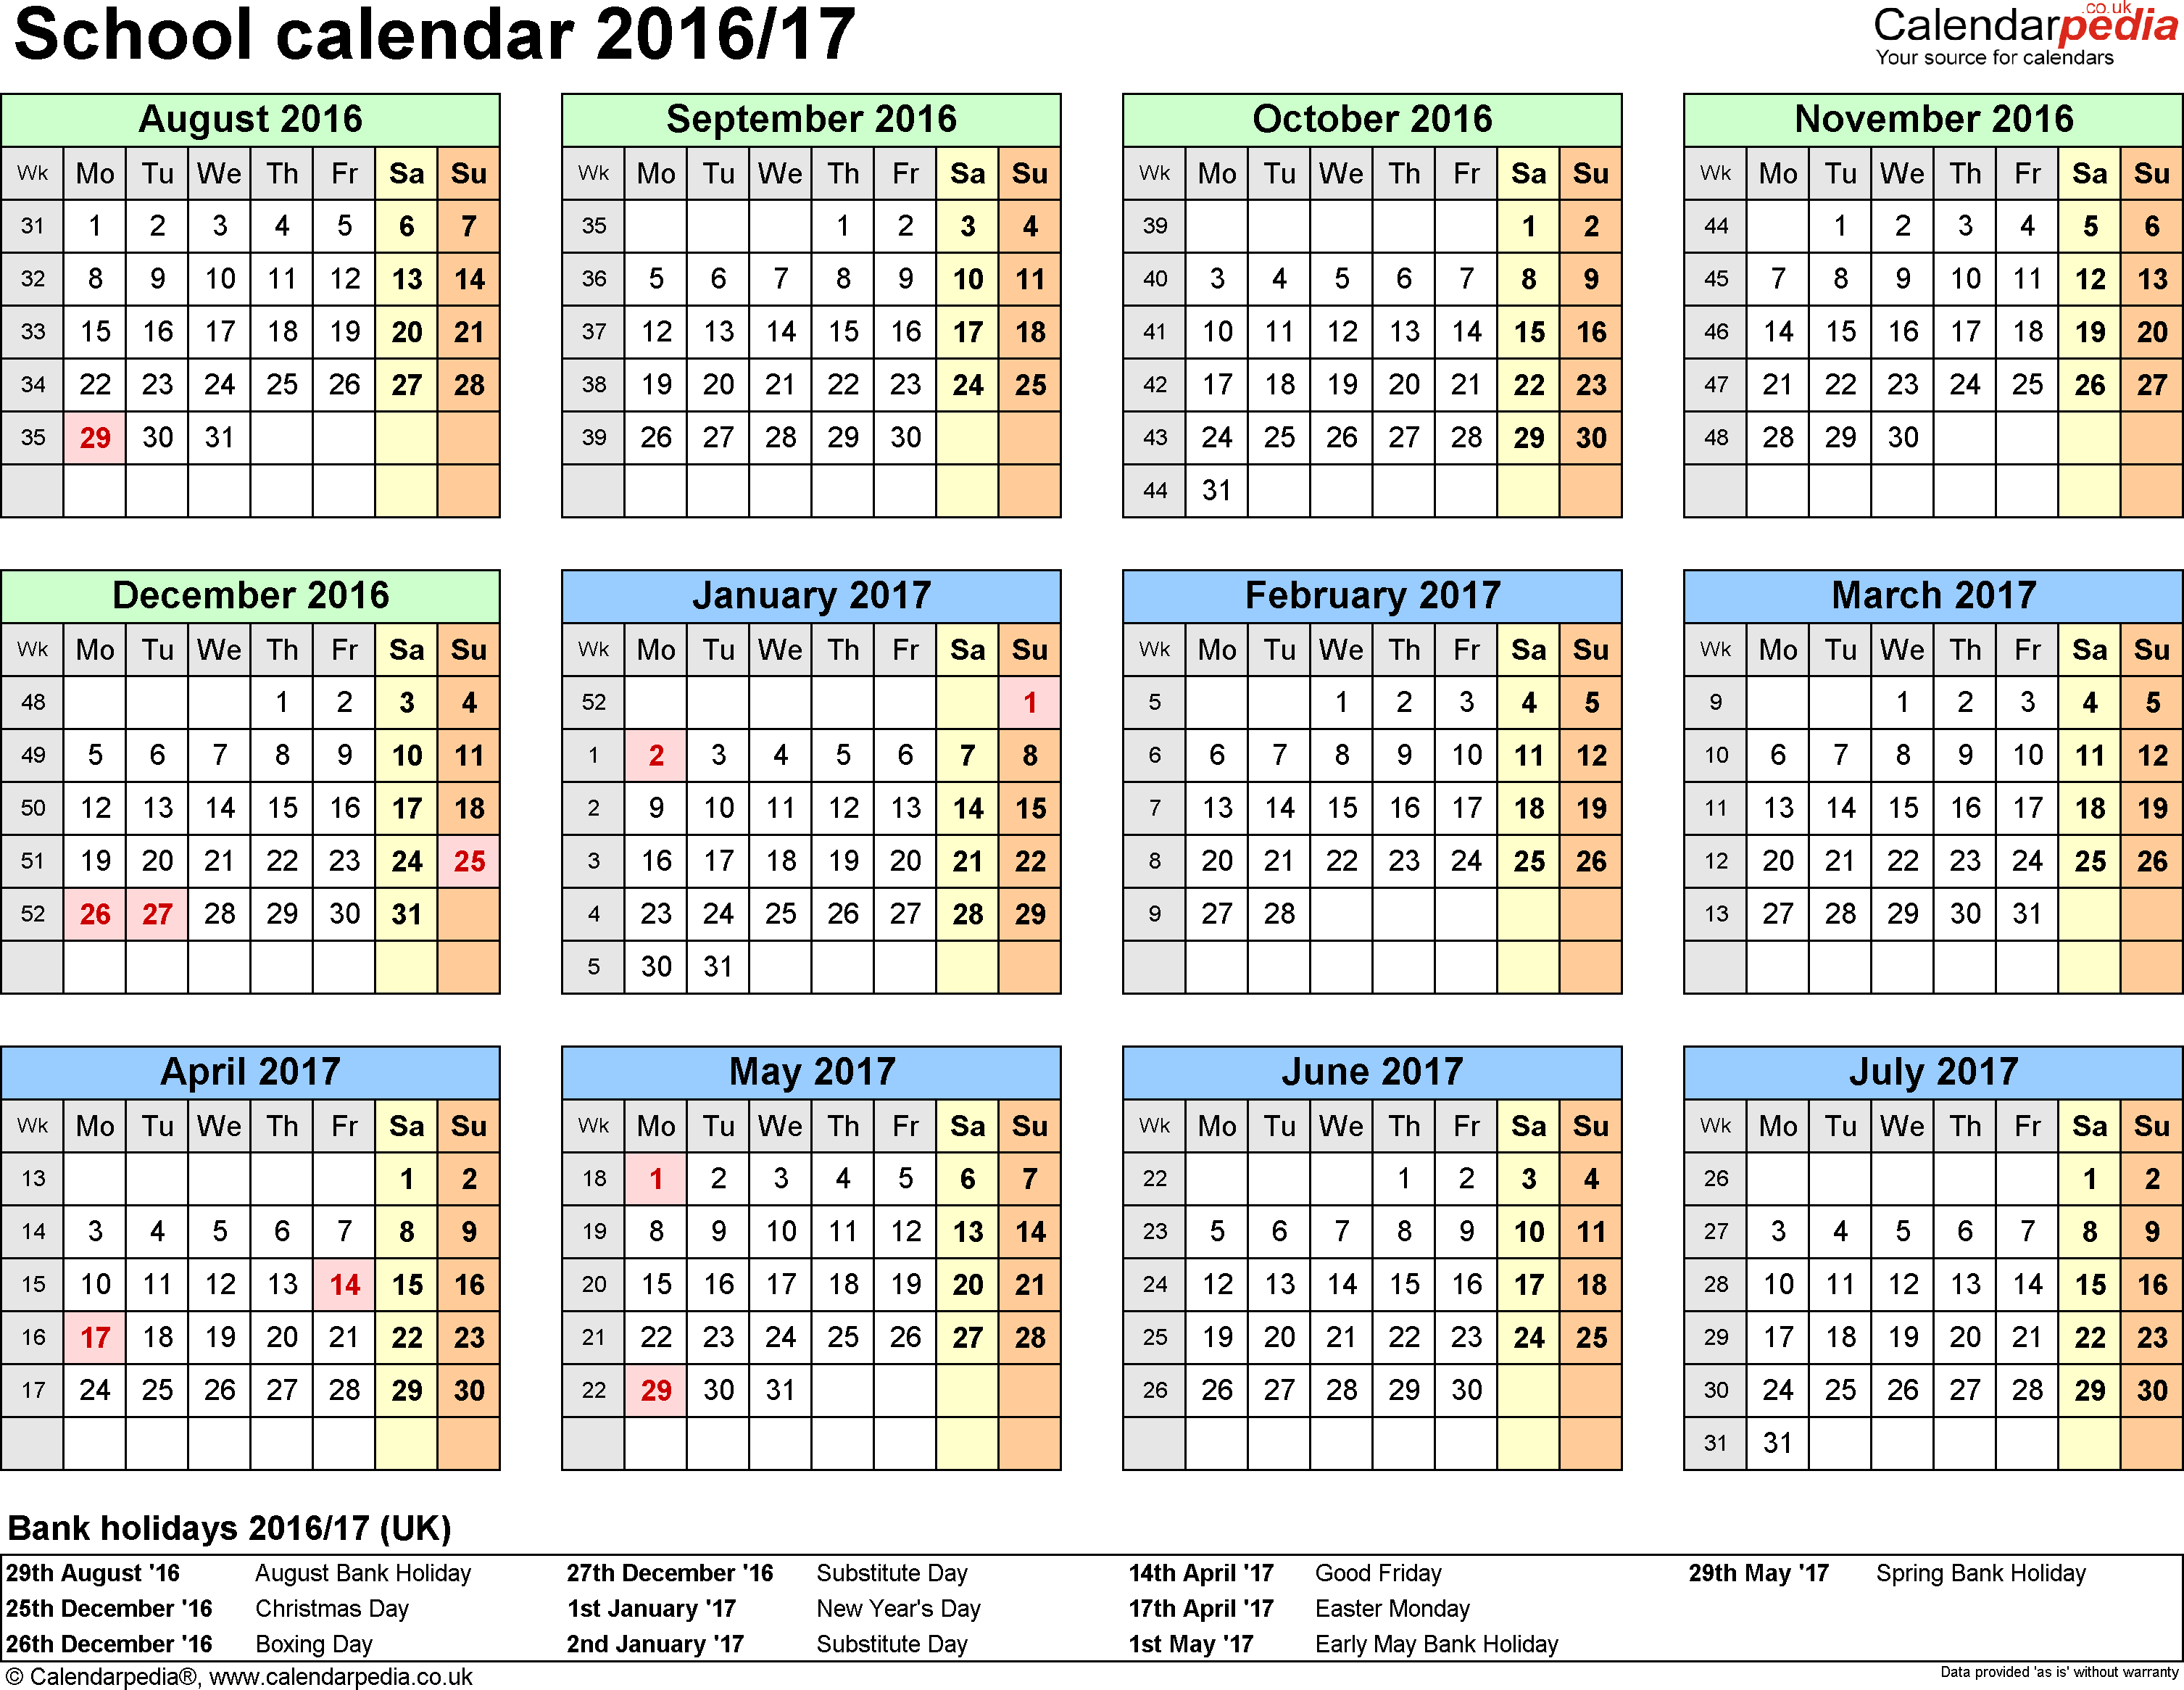 Template 4: School year calendars 2016/17 as Word template, year at a glance, 1 page